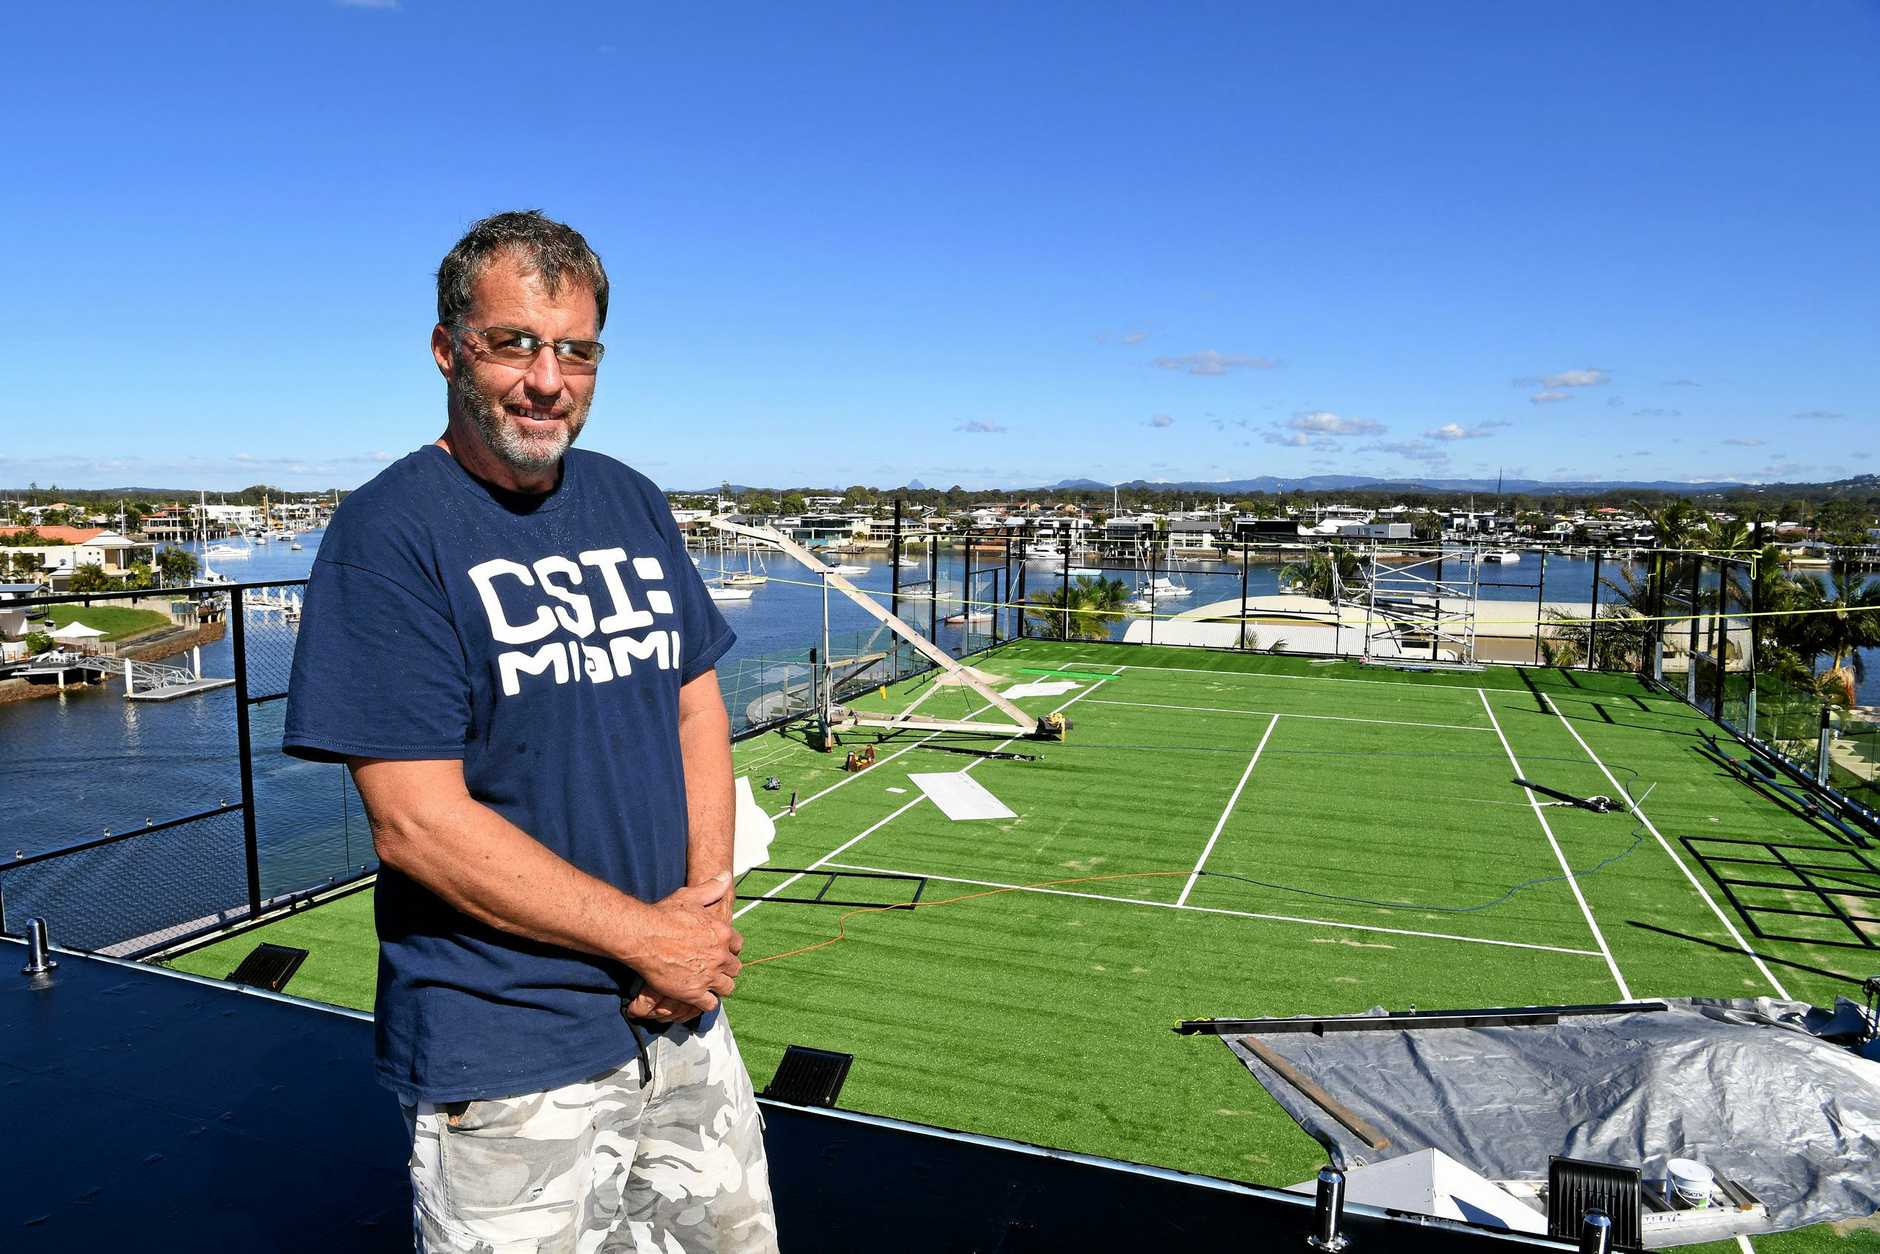 Wayne Dwyer says the fence on his Minyama Island home roof can be folded down to fit within height regulations.